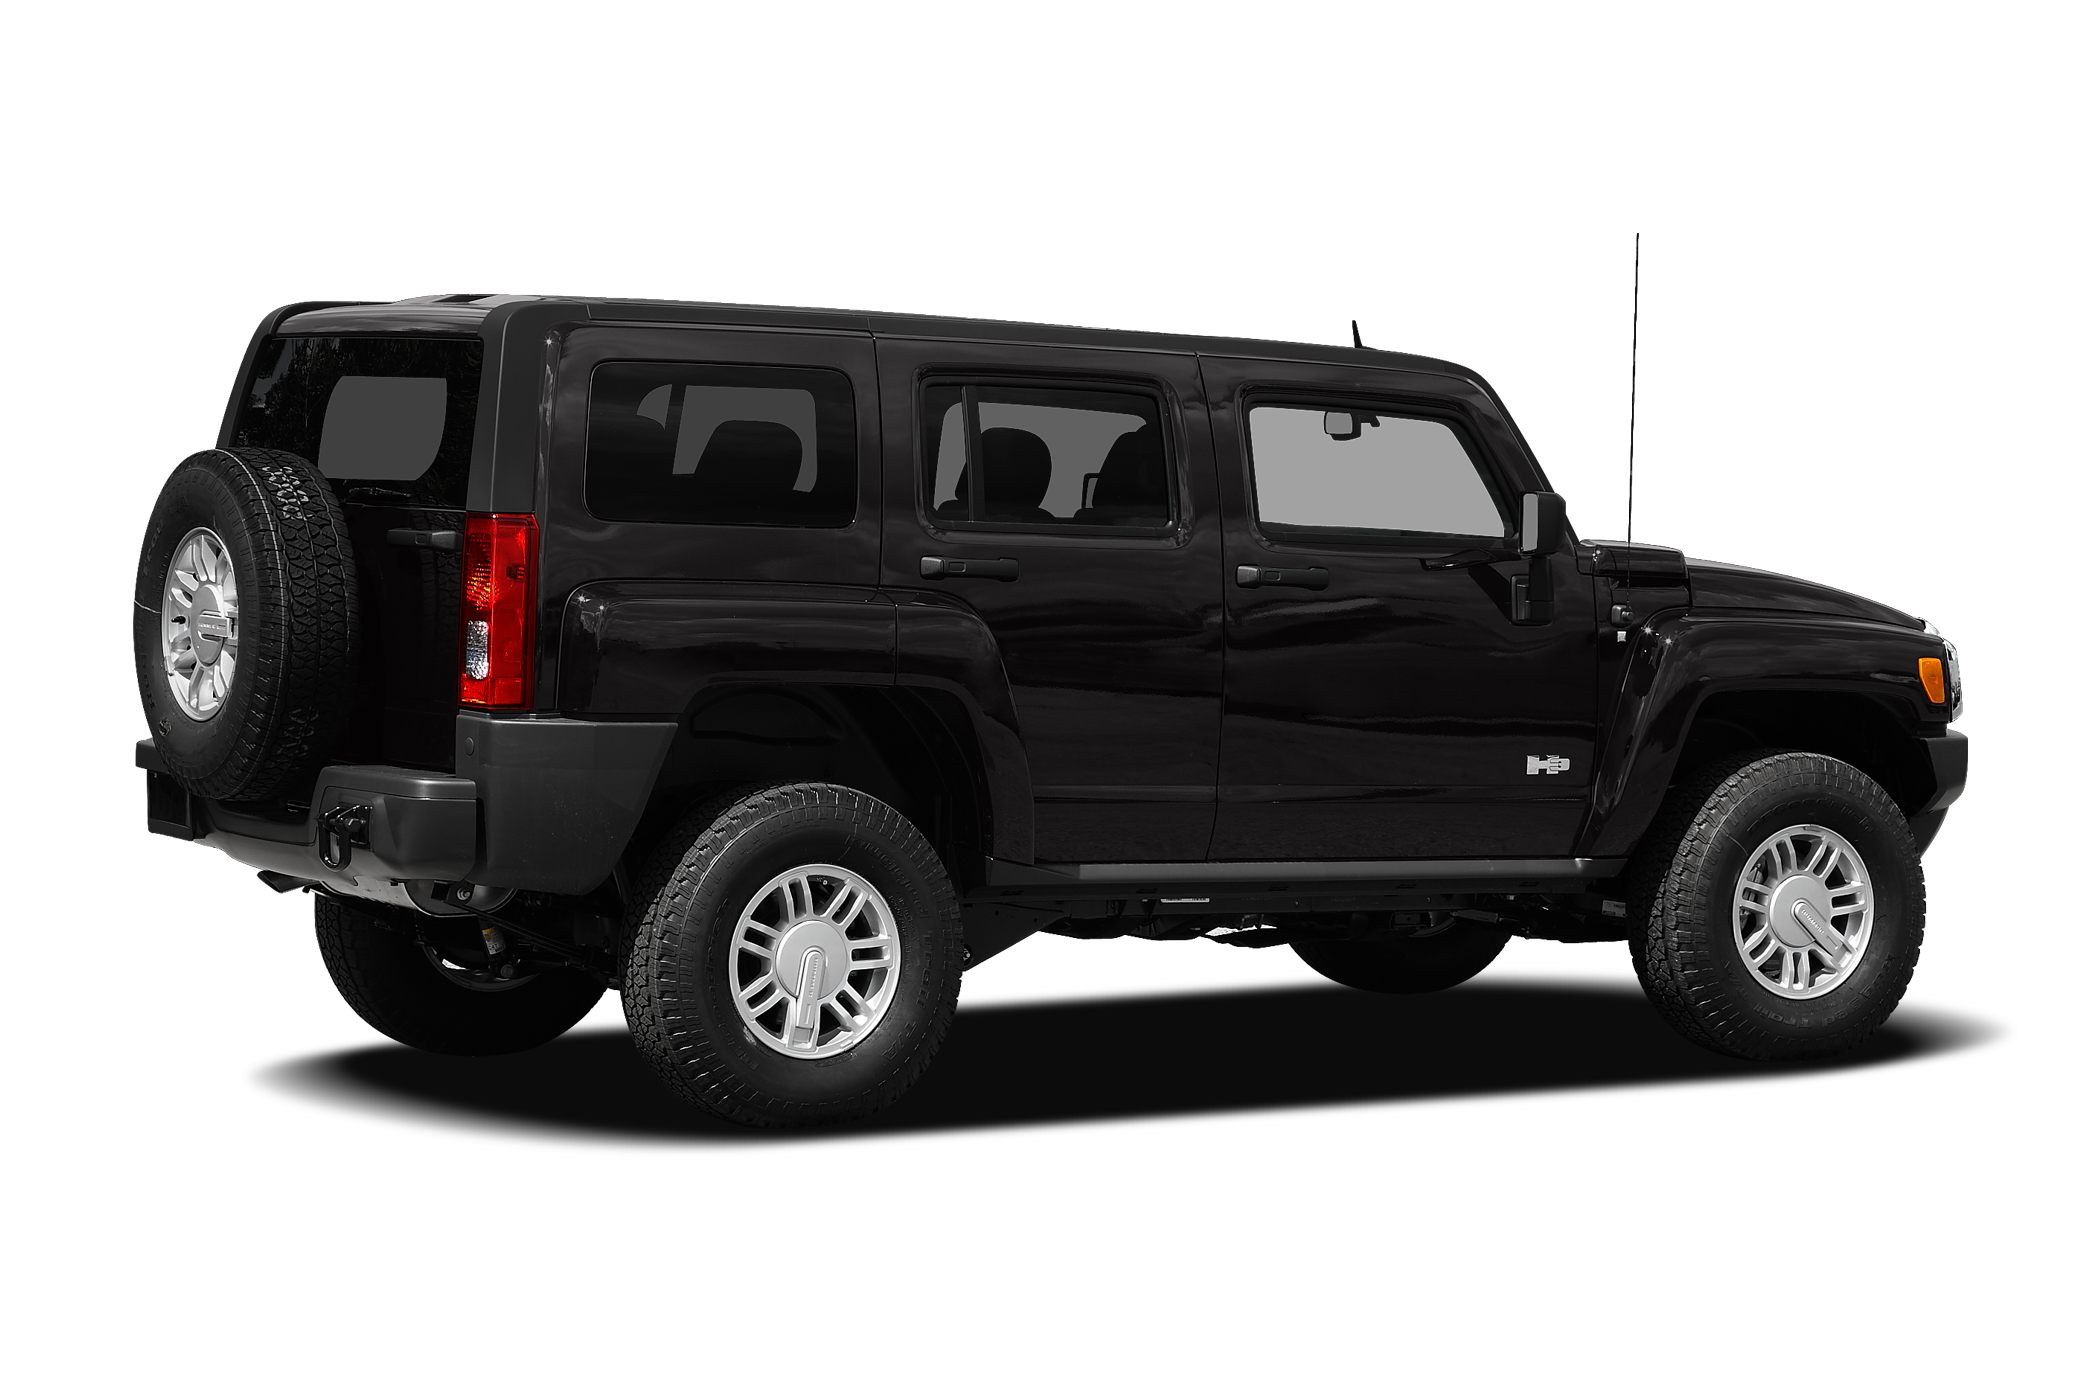 Hummer H3 Suv In Oklahoma For Sale ▷ Used Cars Buysellsearch